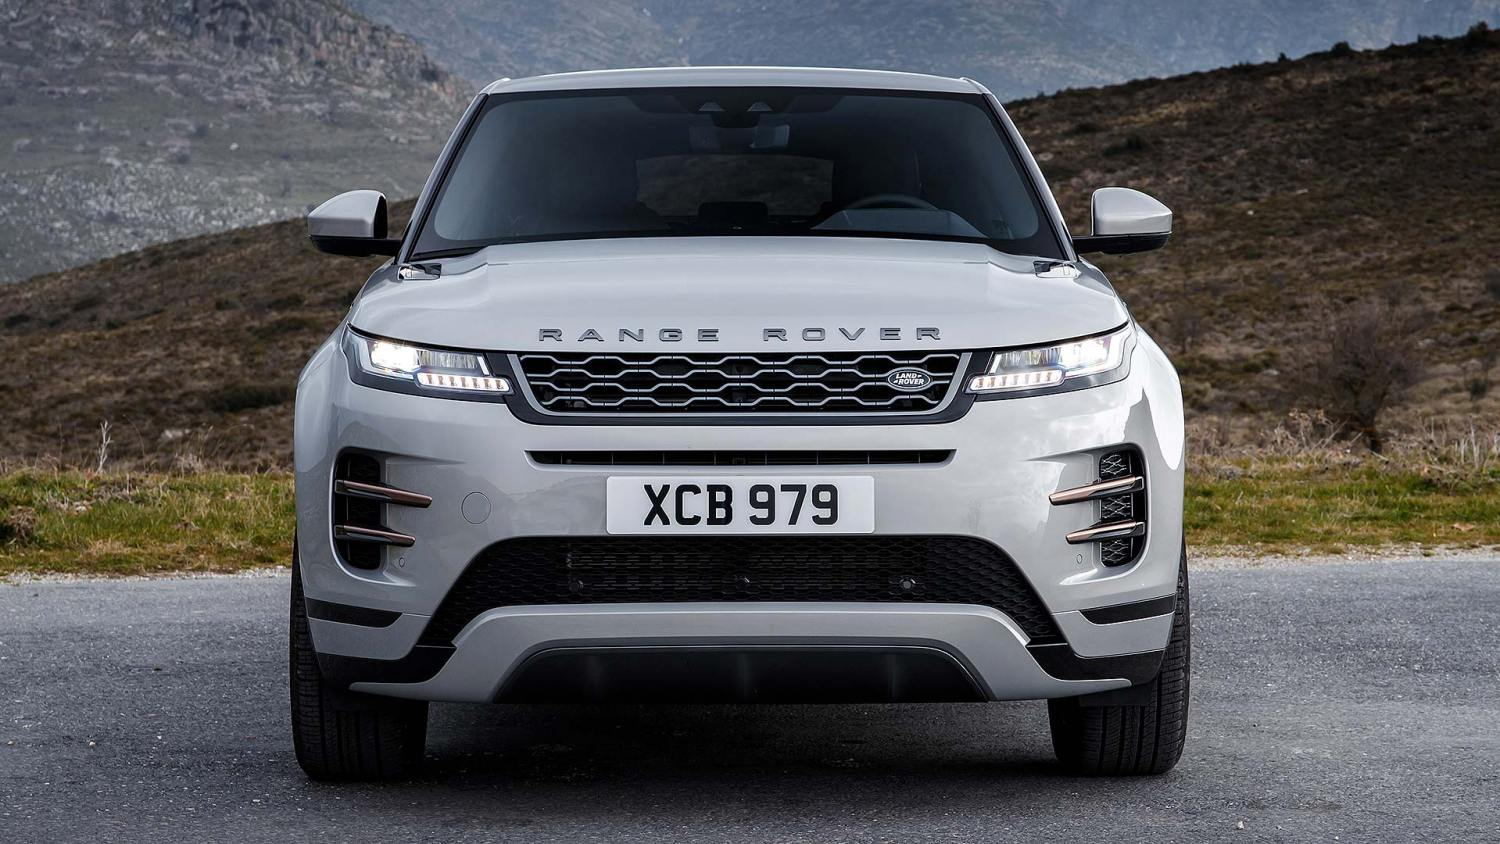 2019 Range Rover Evoque review: Remastered original | Motoring Research